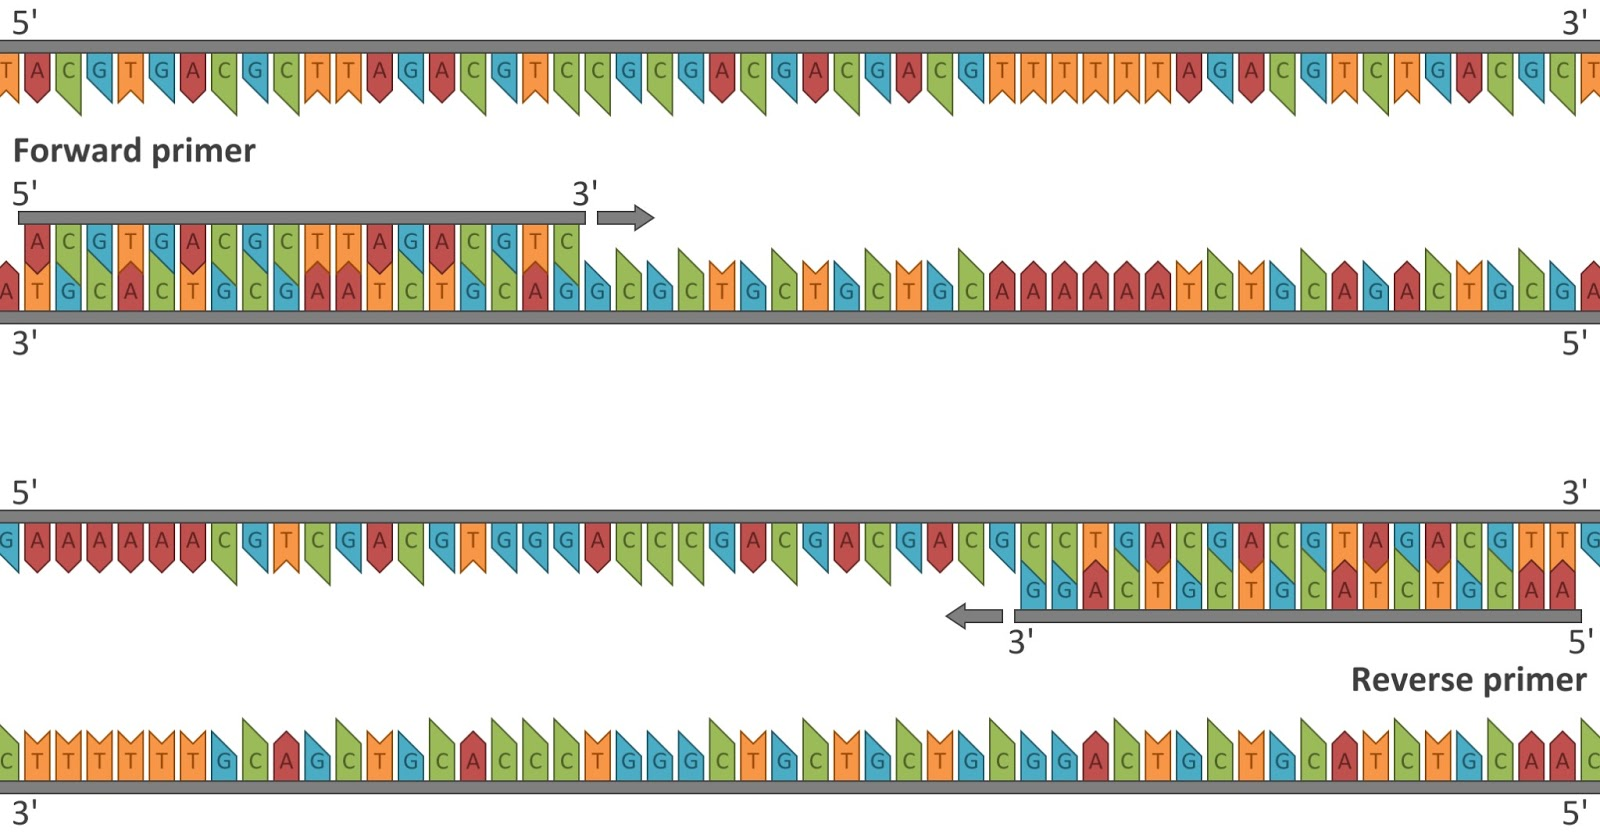 how much template dna for pcr - calculated images need to teach pcr